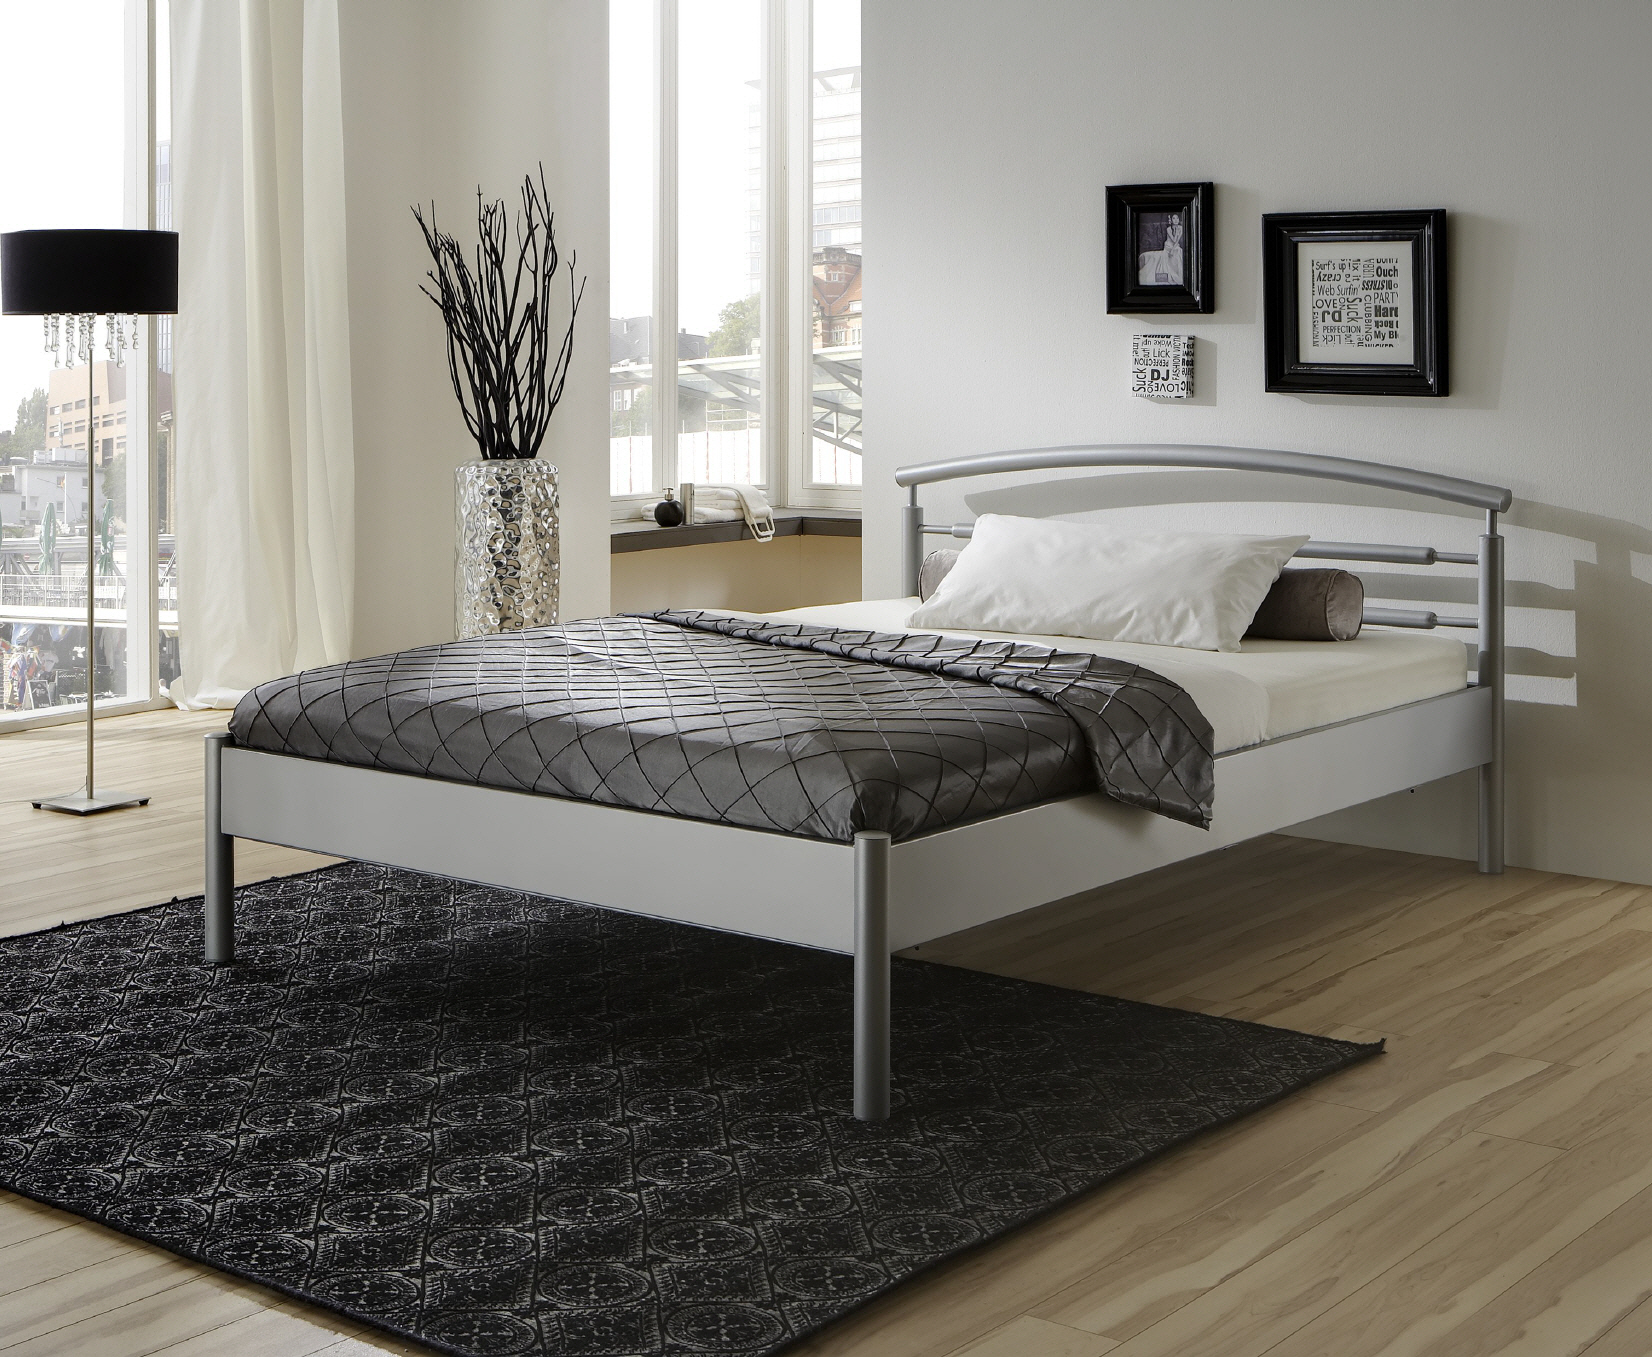 dico metallbett julia. Black Bedroom Furniture Sets. Home Design Ideas